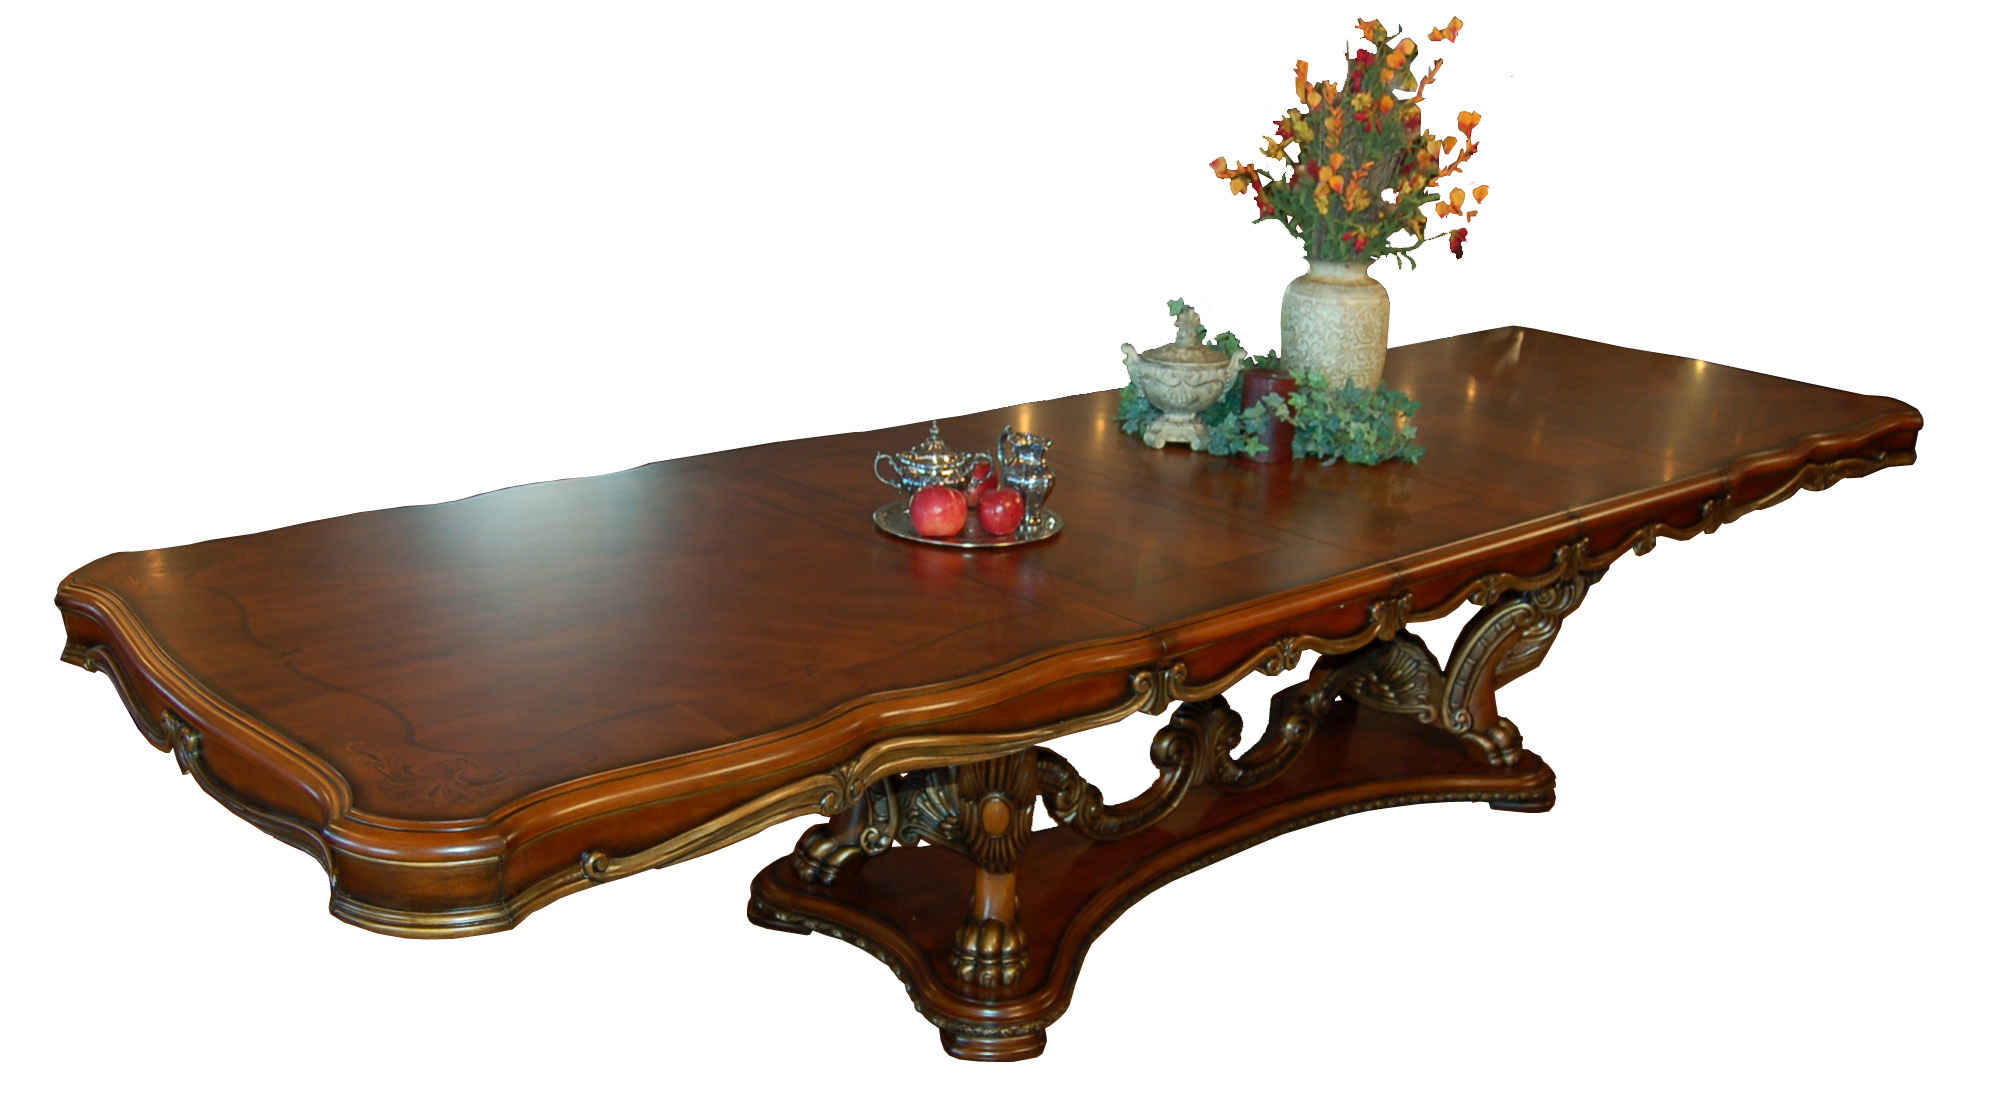 Mahogany and More Dining Tables - Ornate French Rococo Large ...